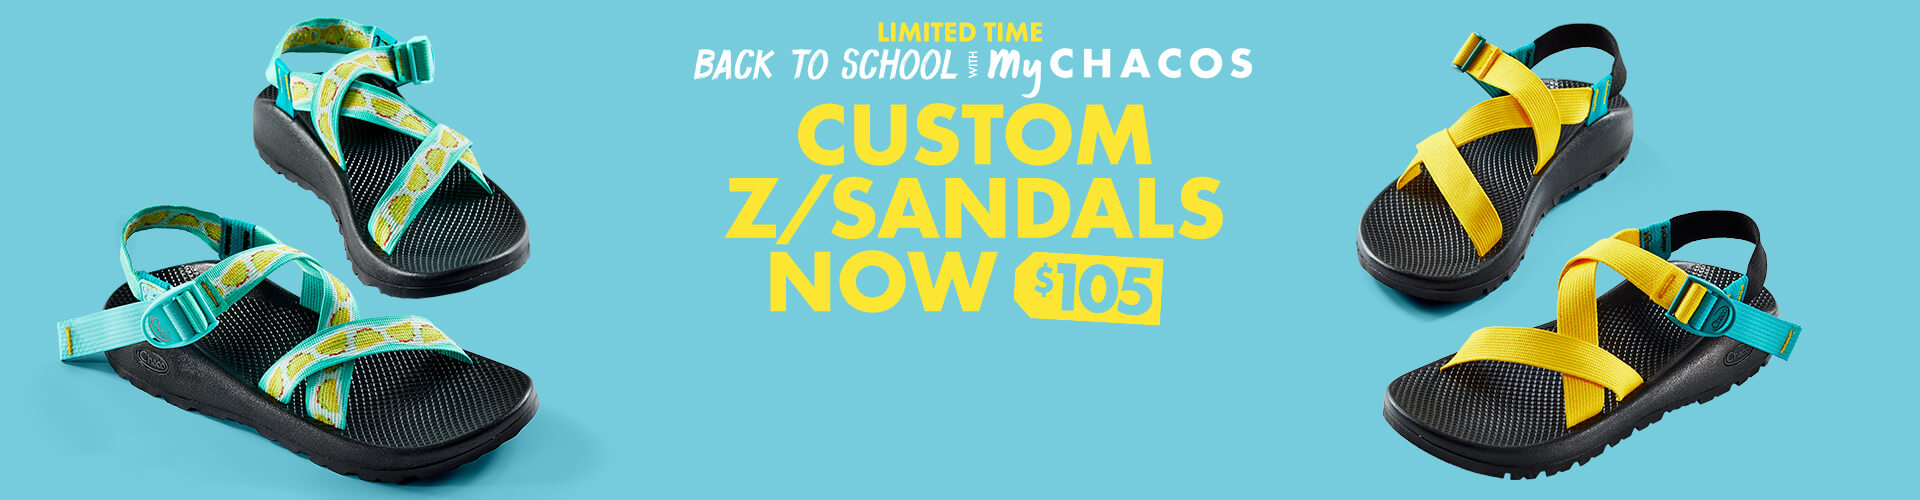 Limited time: Back to School with My Chacos. Custom Z/Sandals now $105.